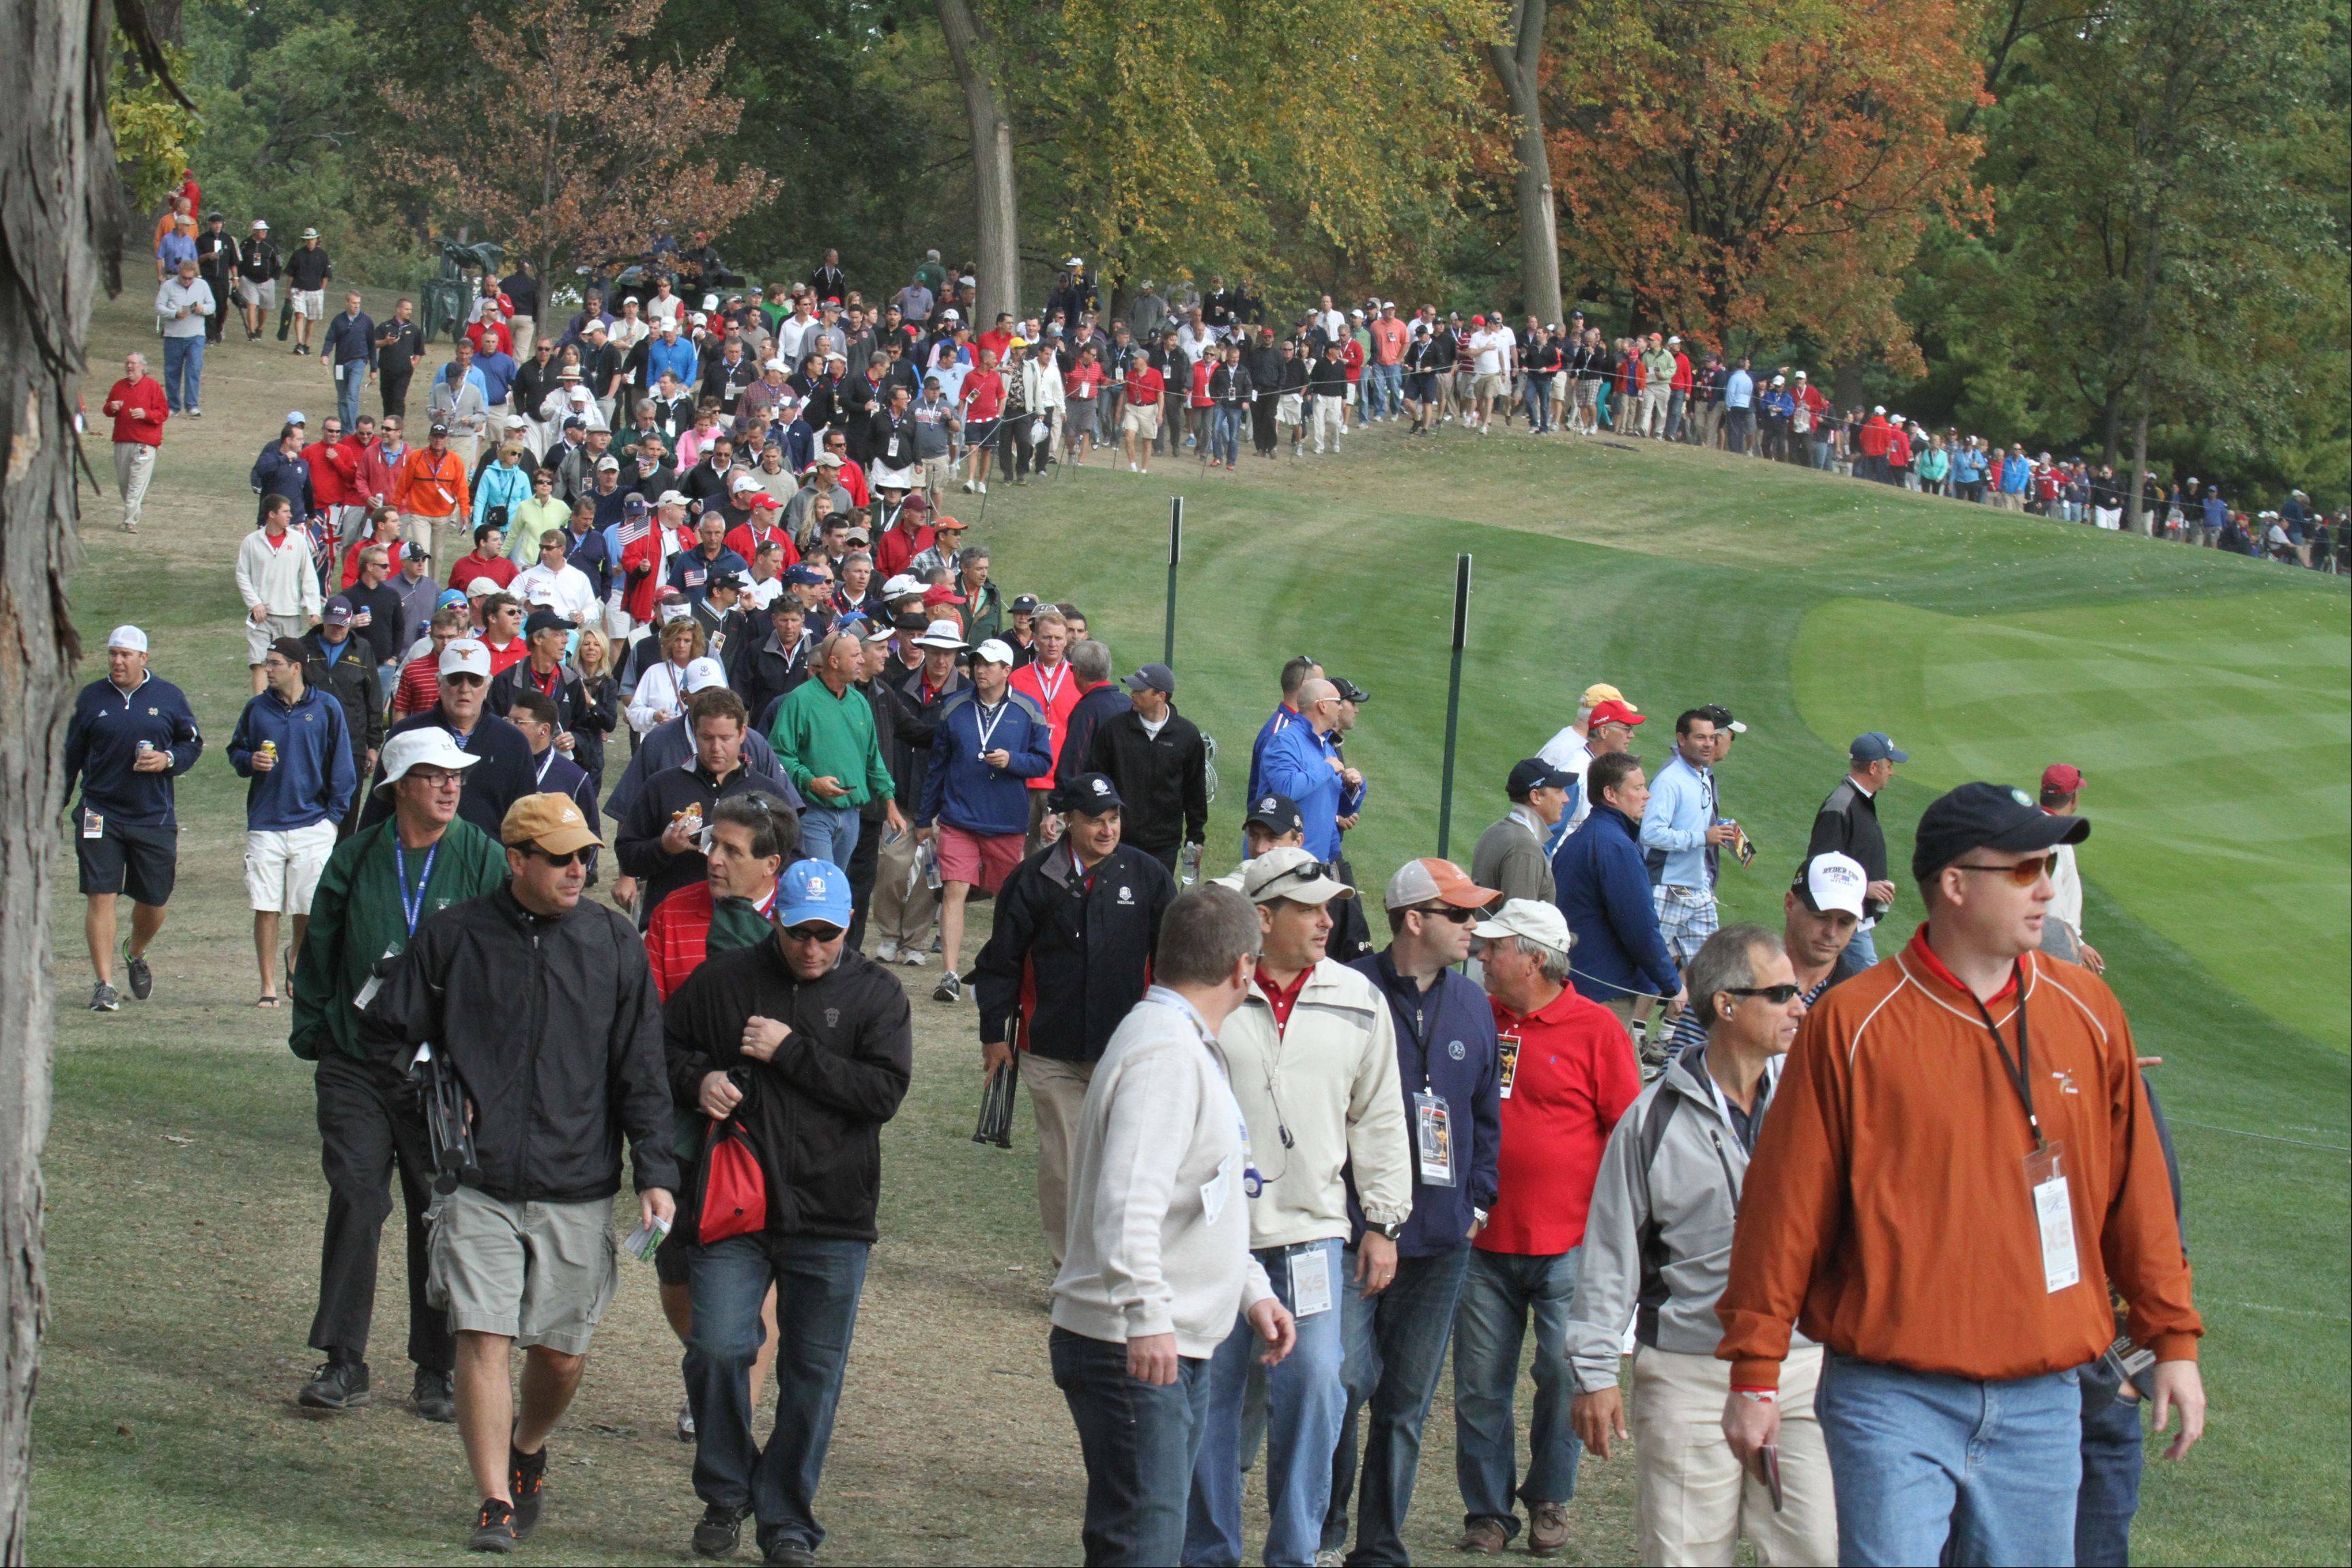 Thousands of spectators lined the fairways at Medinah Country Club on Friday during the first round of the Ryder Cup.